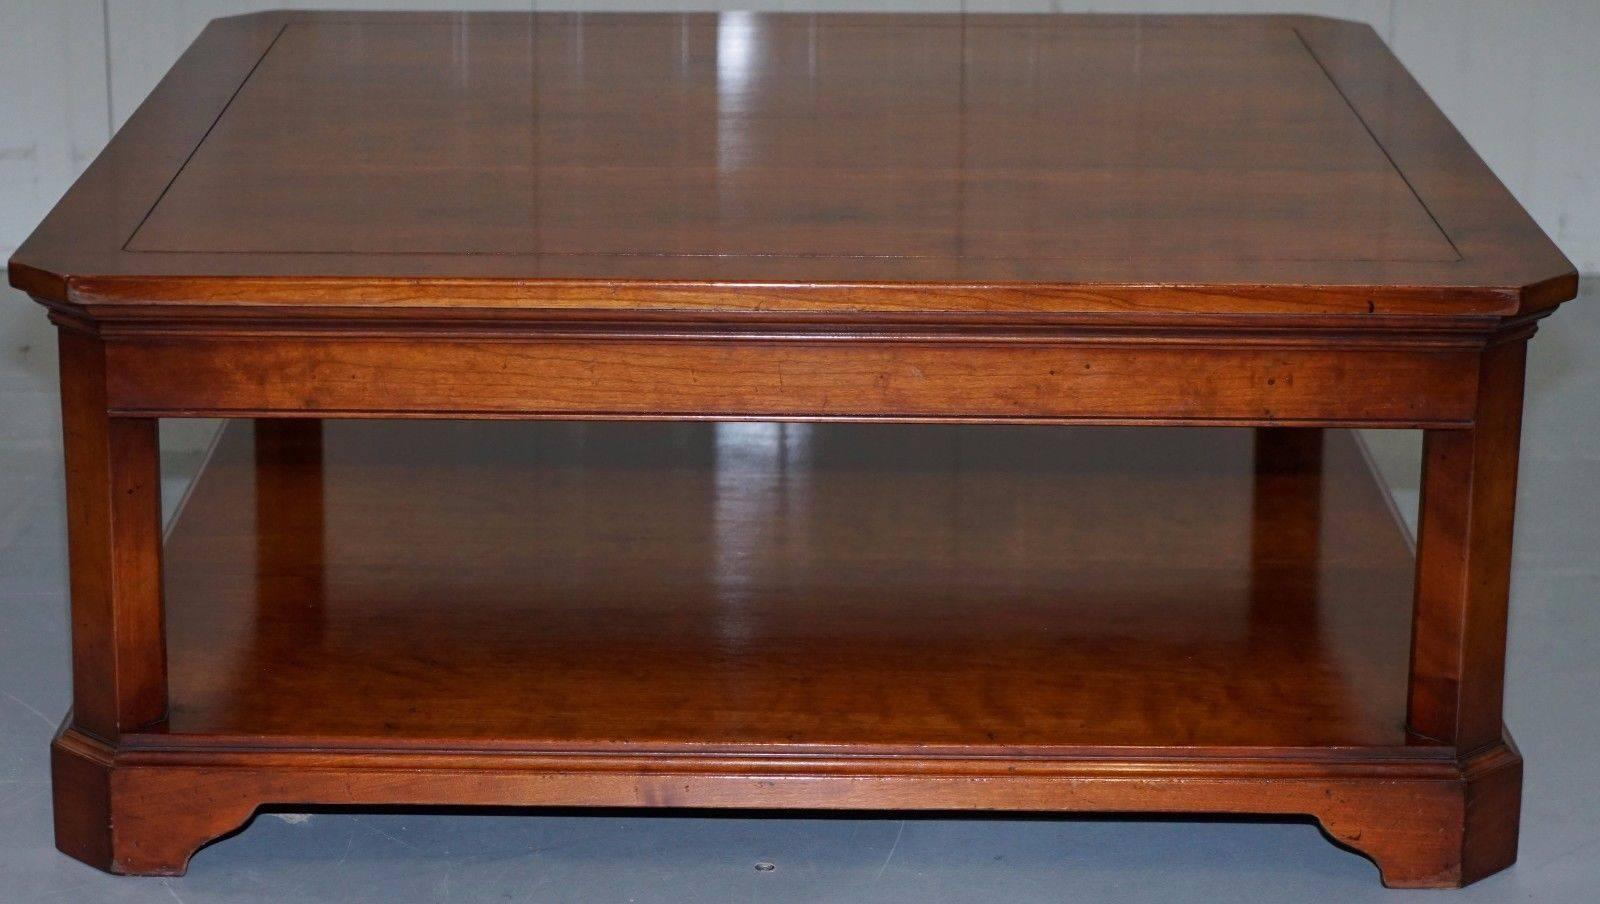 Delicieux Rare Harrods London Original Rare Cherrywood Coffee Table Kennedy